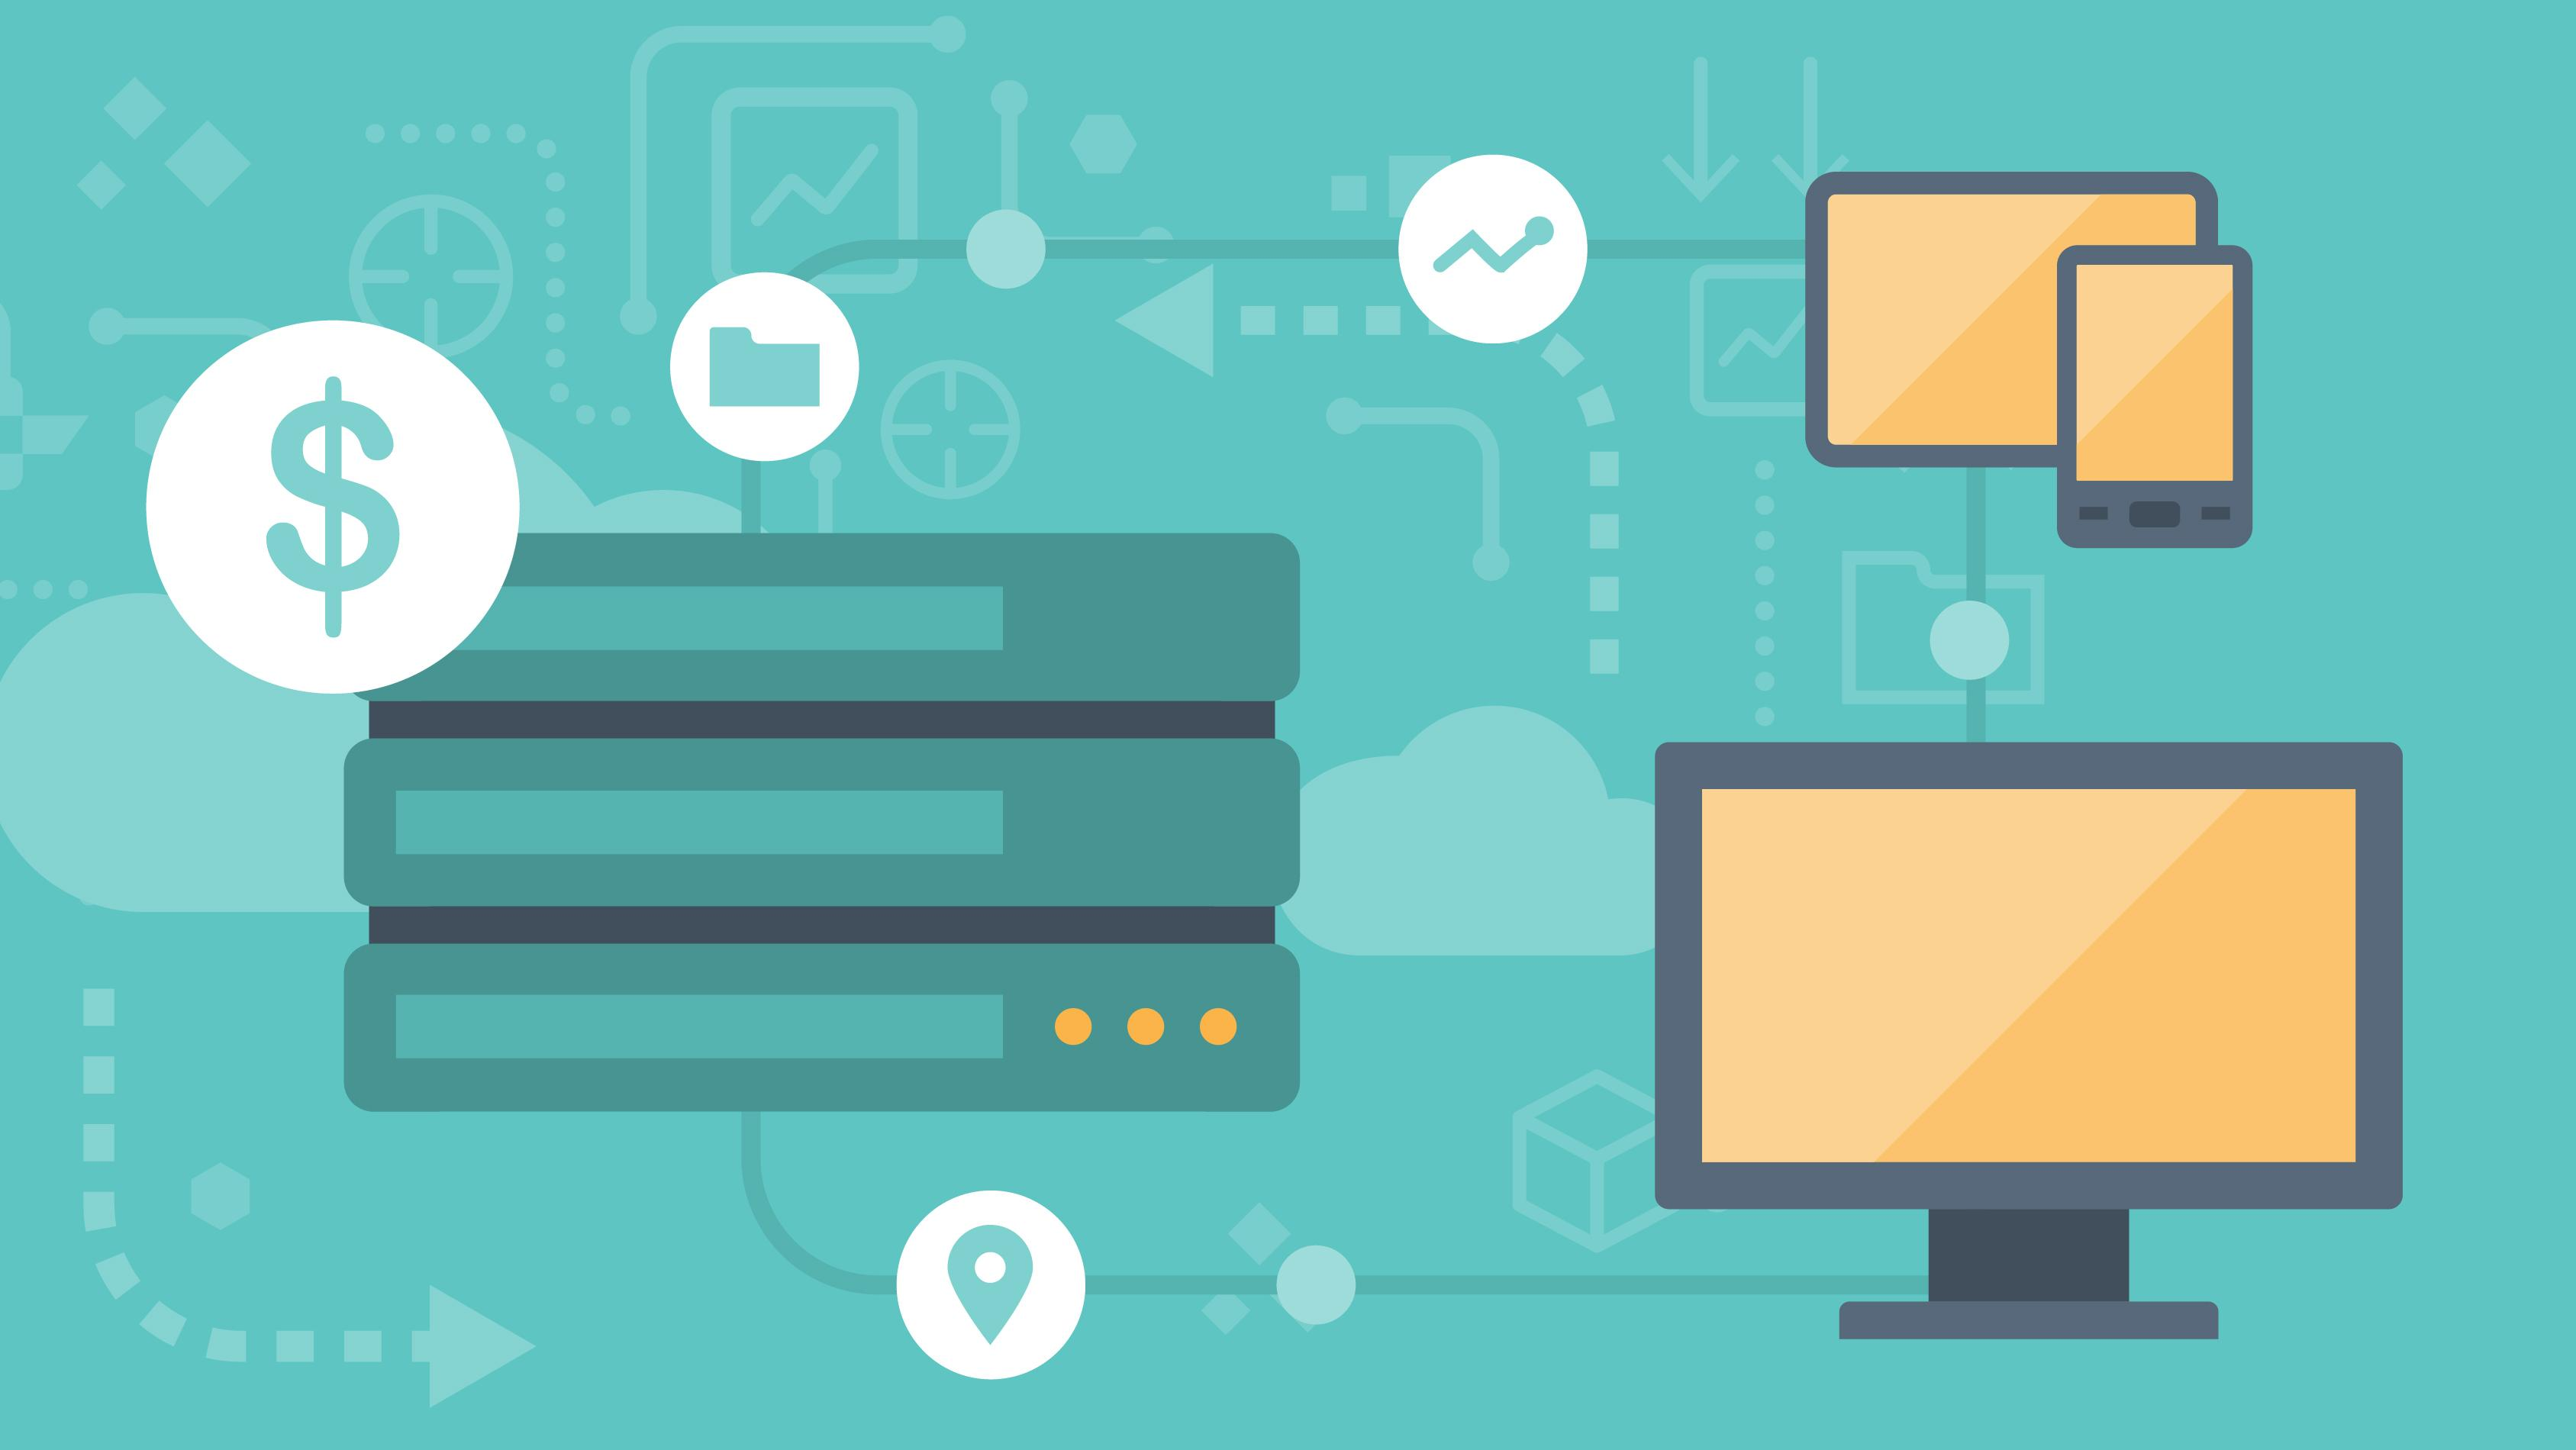 Web hosting: How to choose the best service for yourself?